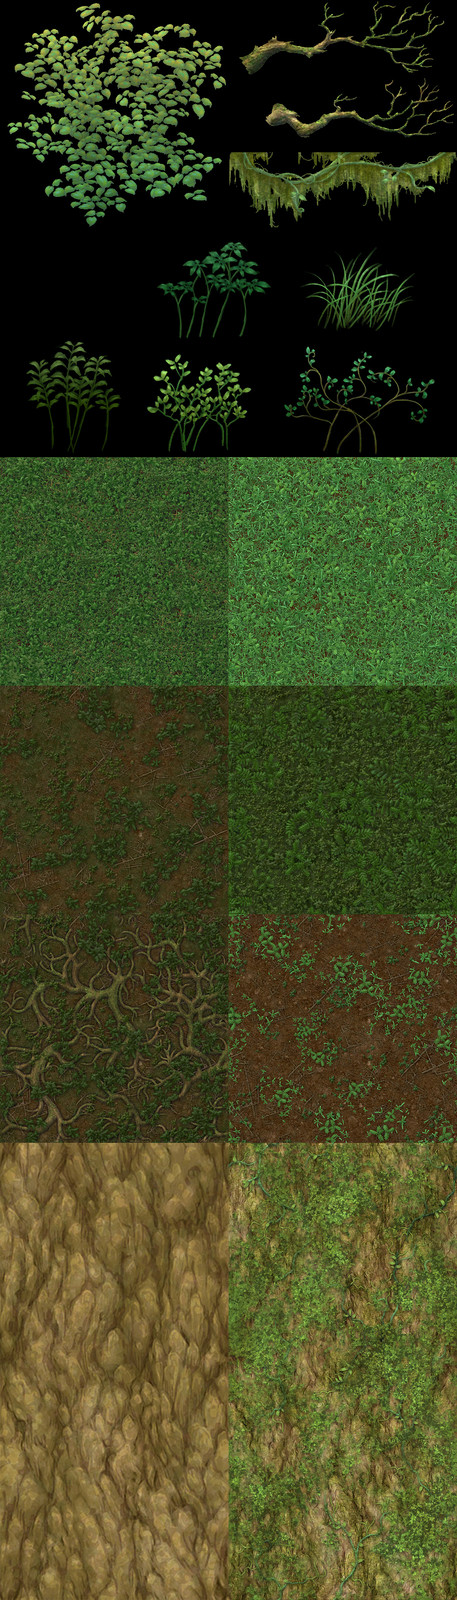 Texture samples, hand painted in Photoshop